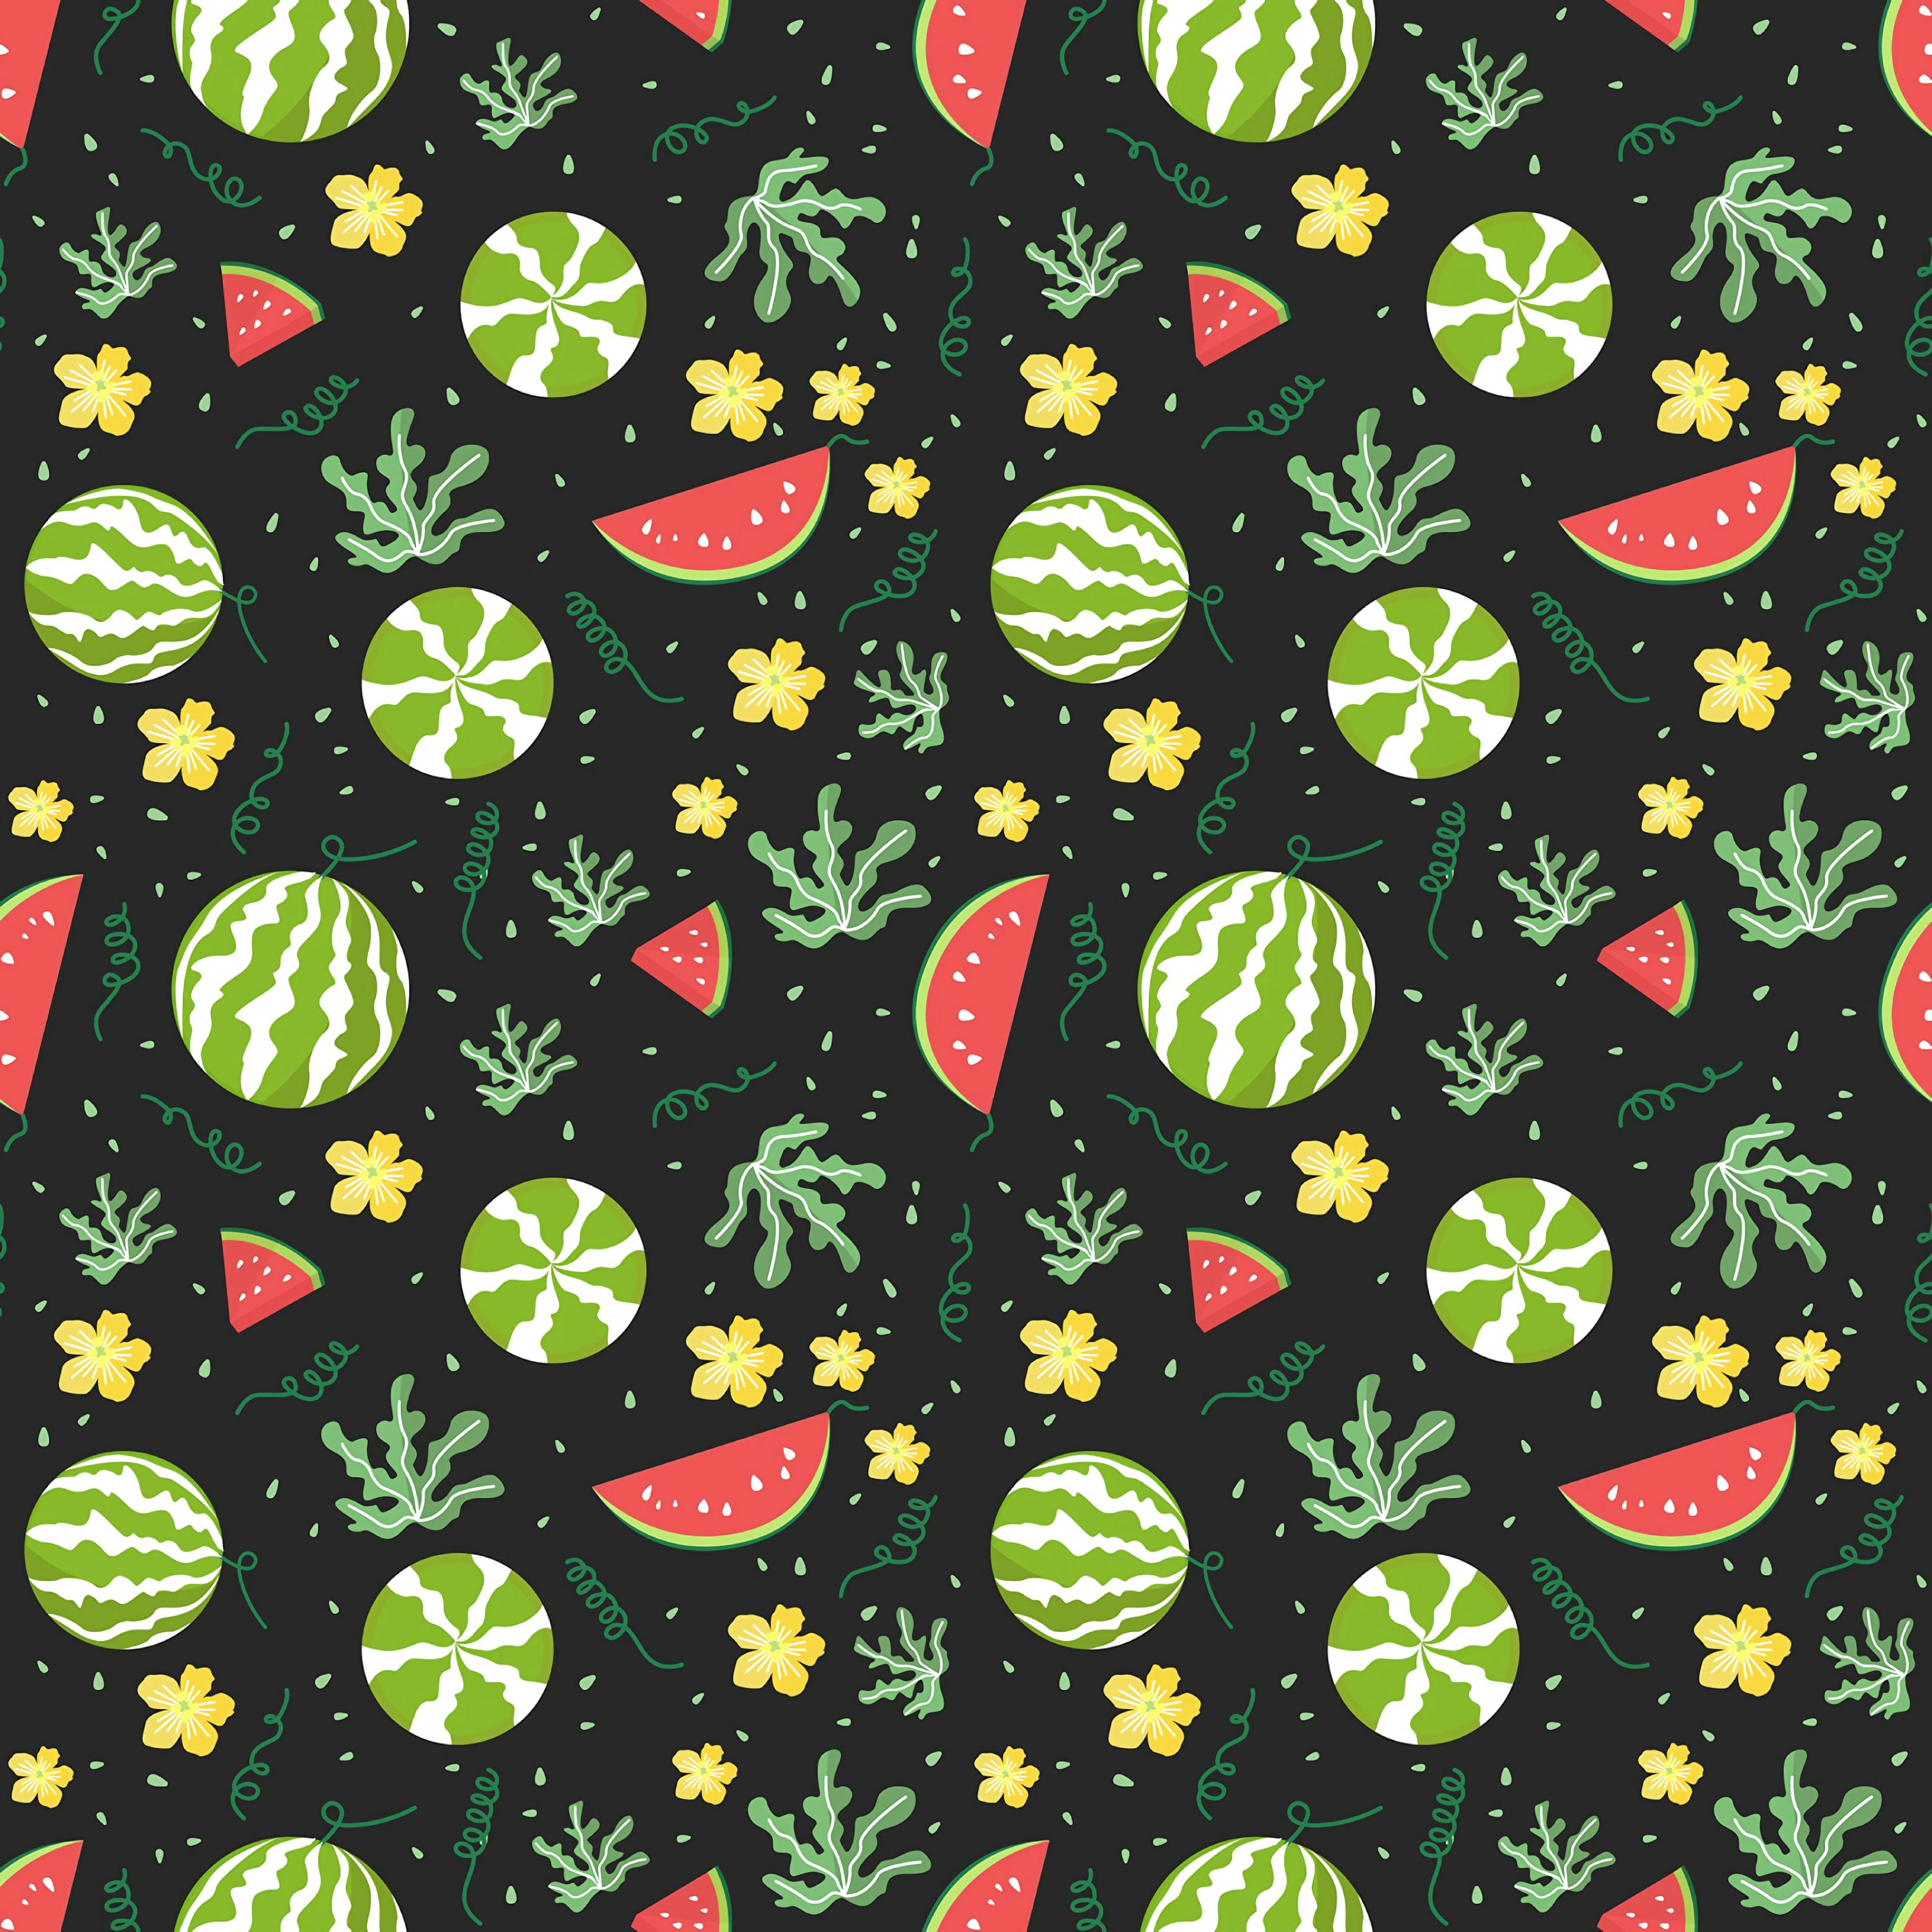 154600 download wallpaper Textures, Texture, Pattern, Patterns, Berries, Watermelons screensavers and pictures for free